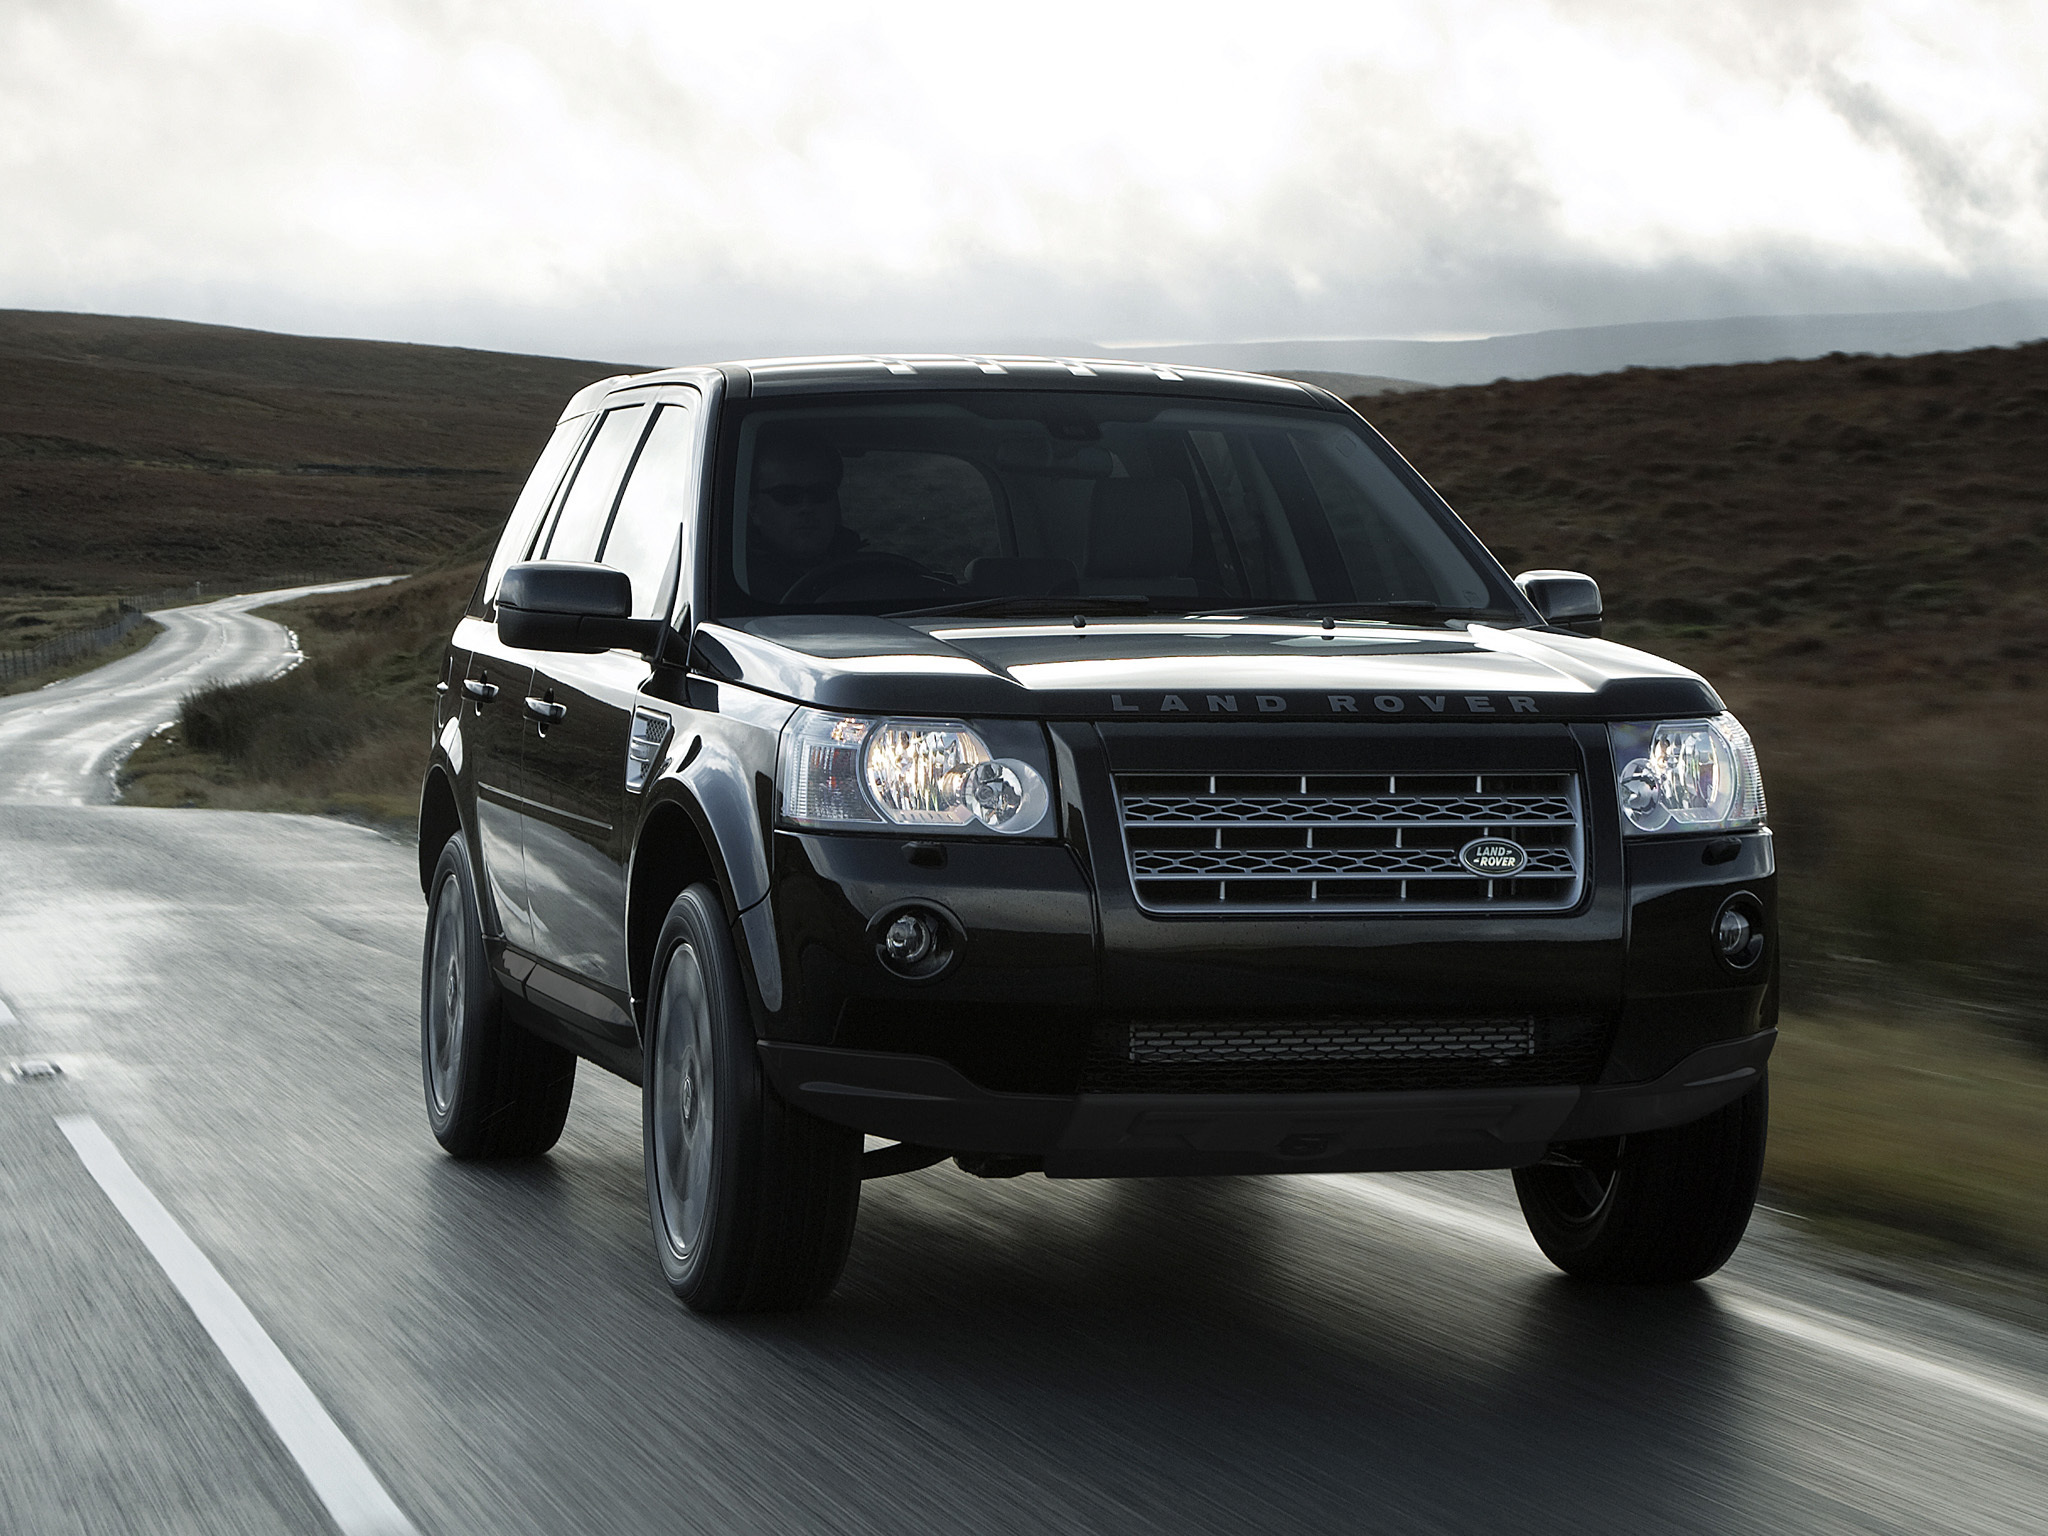 nice desktop wallpaper of land rover freelander 2 wallpaper of sport uk spec. Black Bedroom Furniture Sets. Home Design Ideas